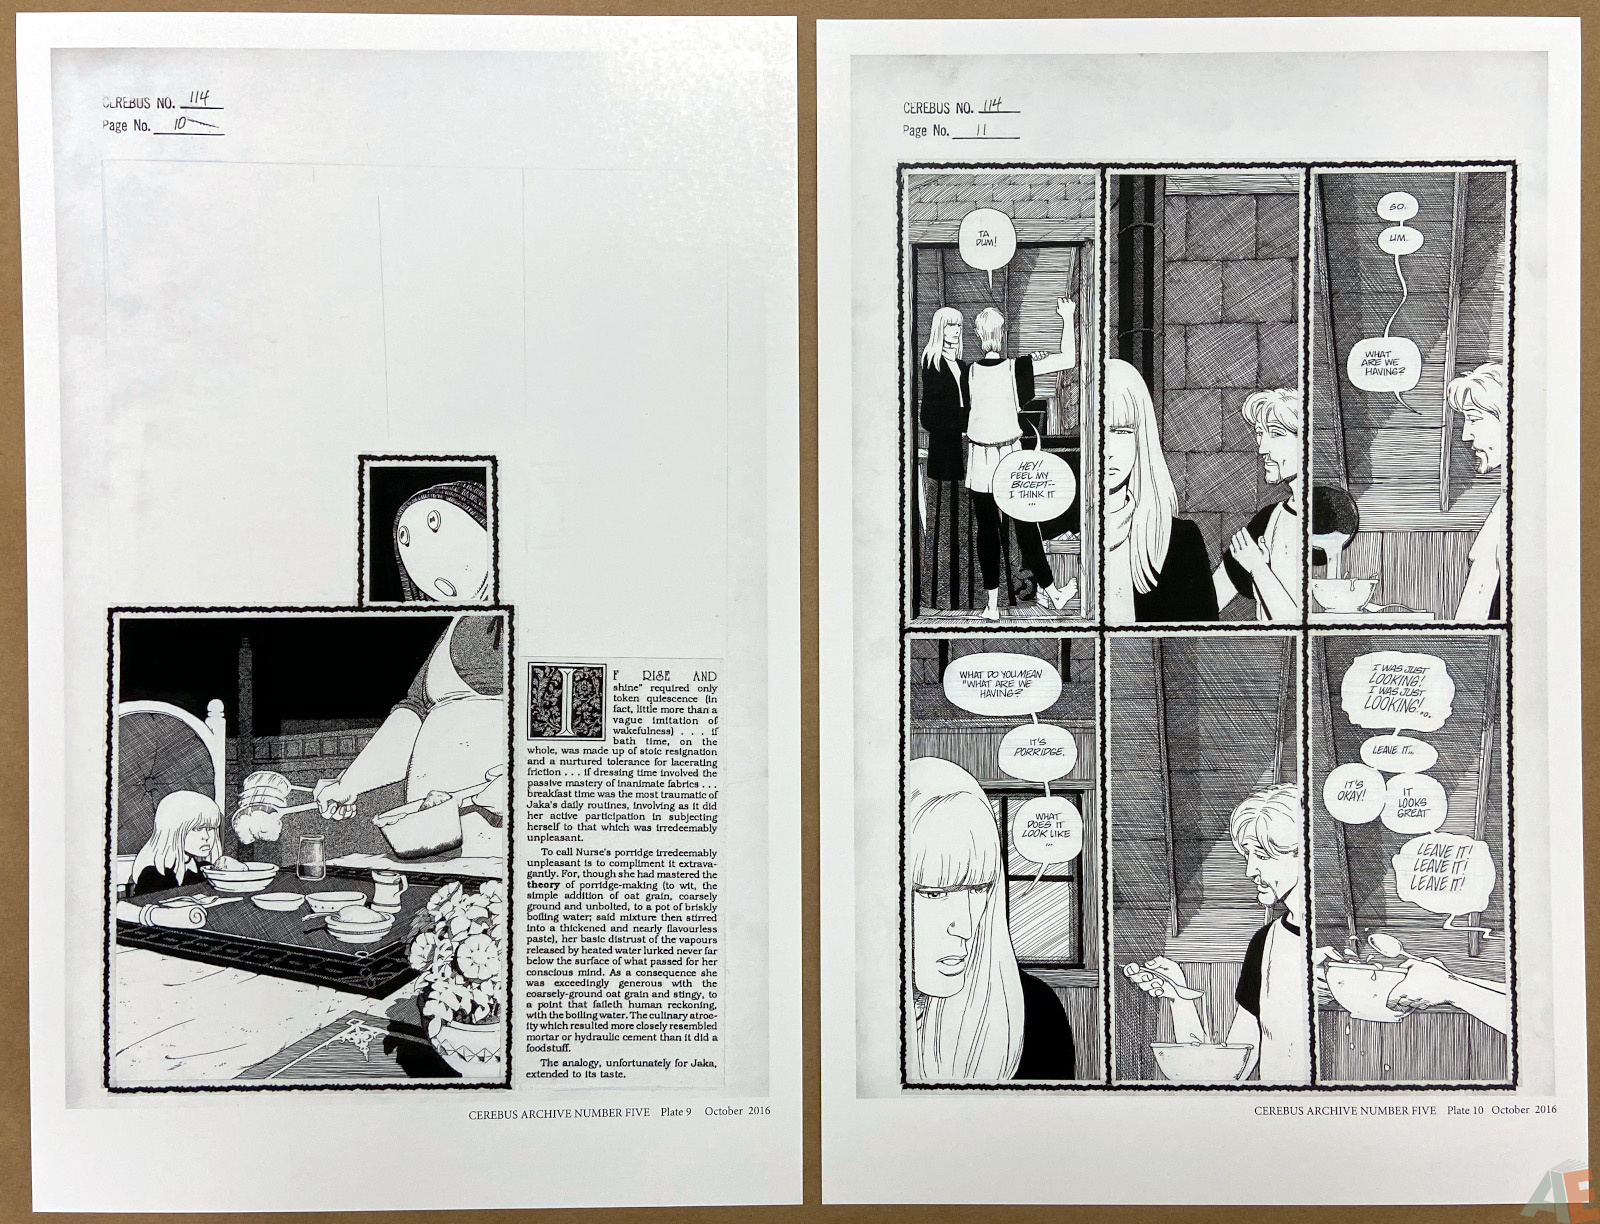 Cerebus Archive Number Five 12